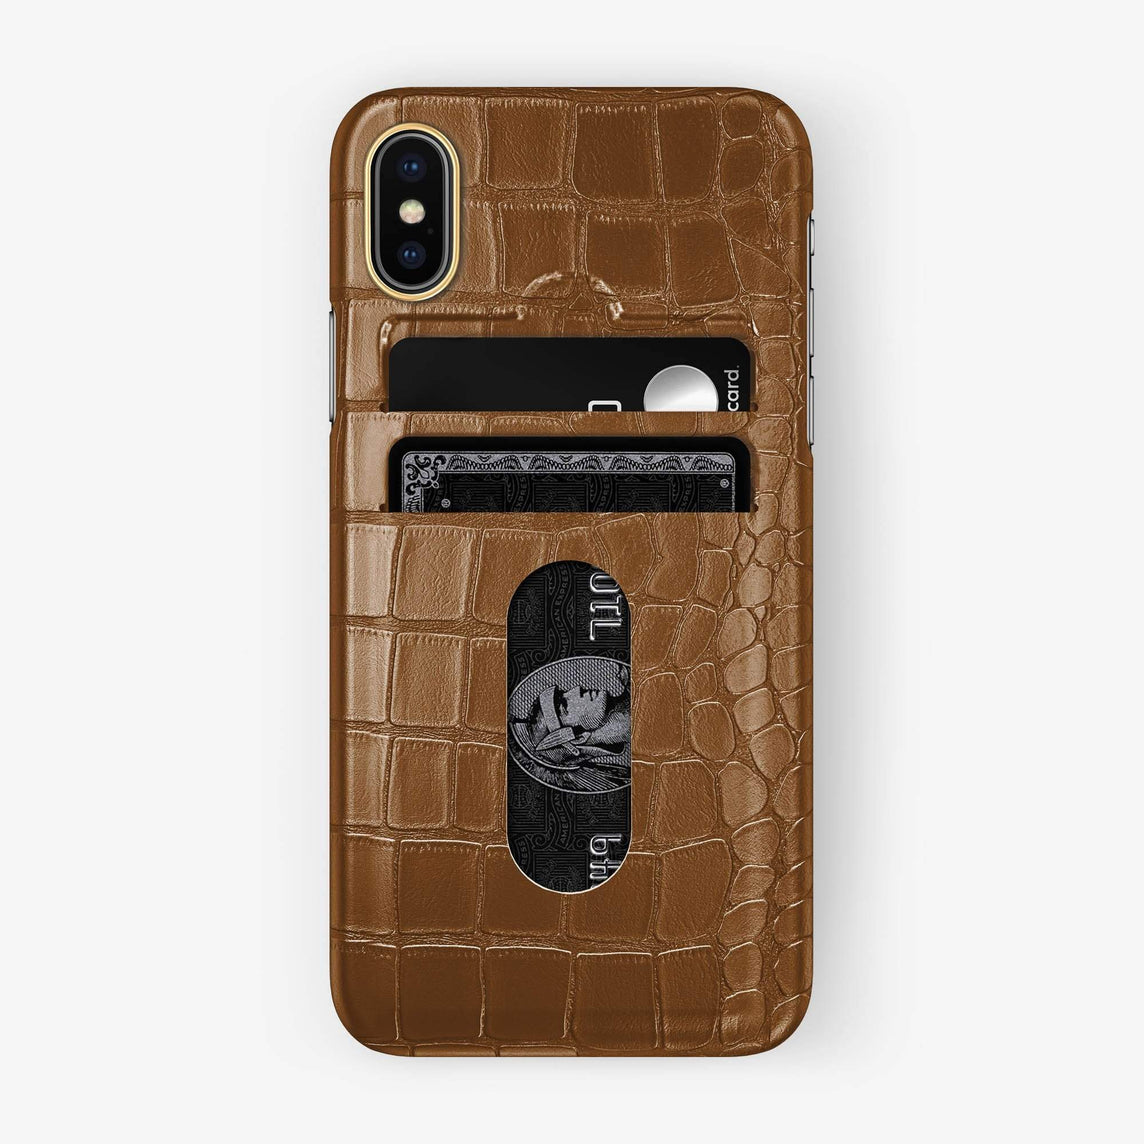 Alligator Card Holder Case iPhone Xs Max | Cognac - Yellow Gold - Hadoro